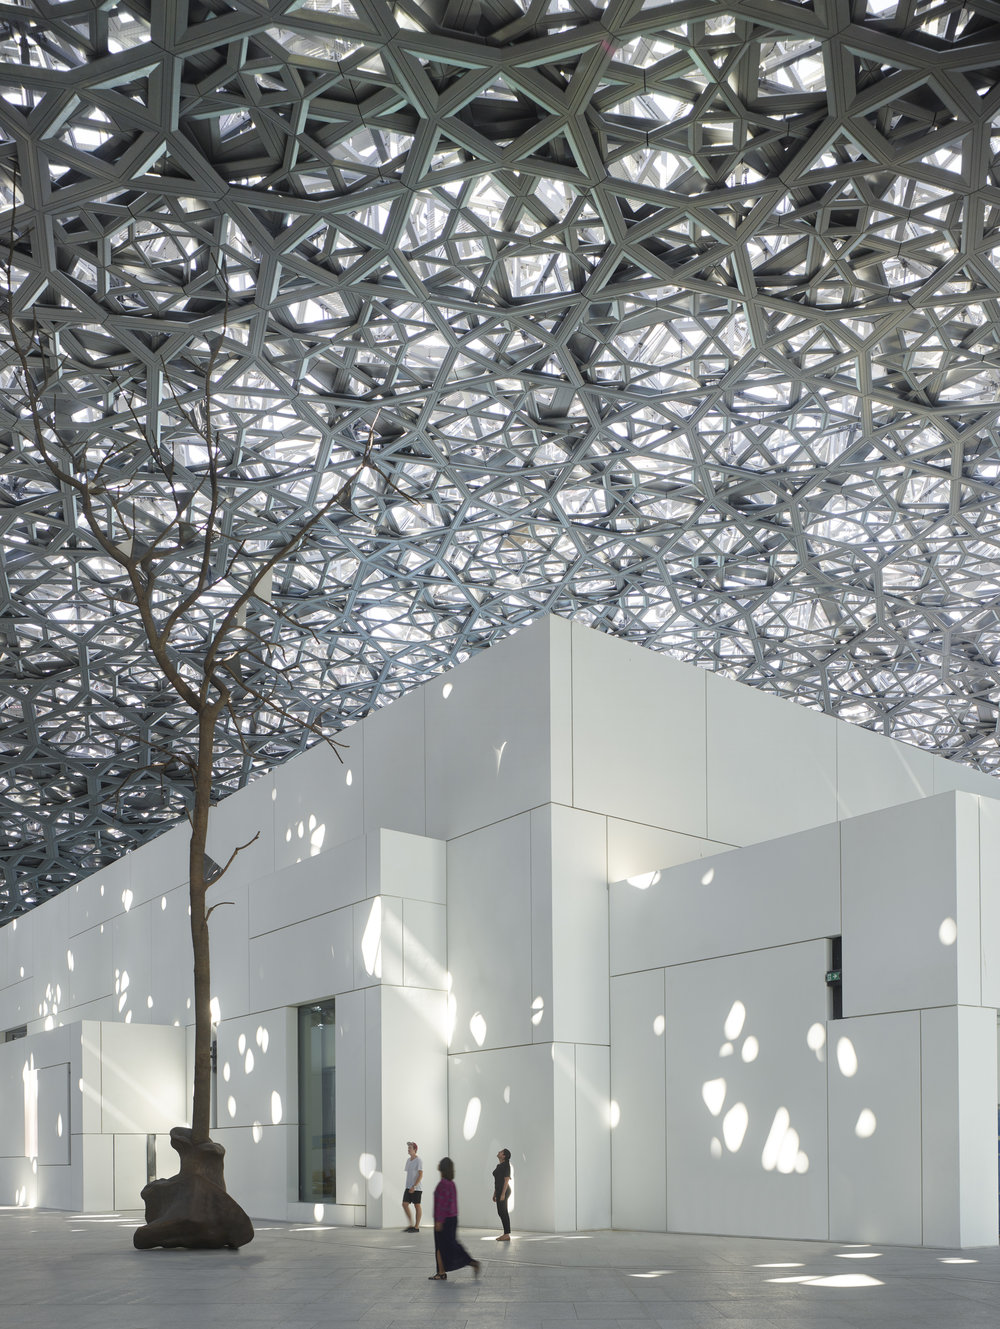 A 'rain of light', filtered through eight layers of geometric perforations in the dome